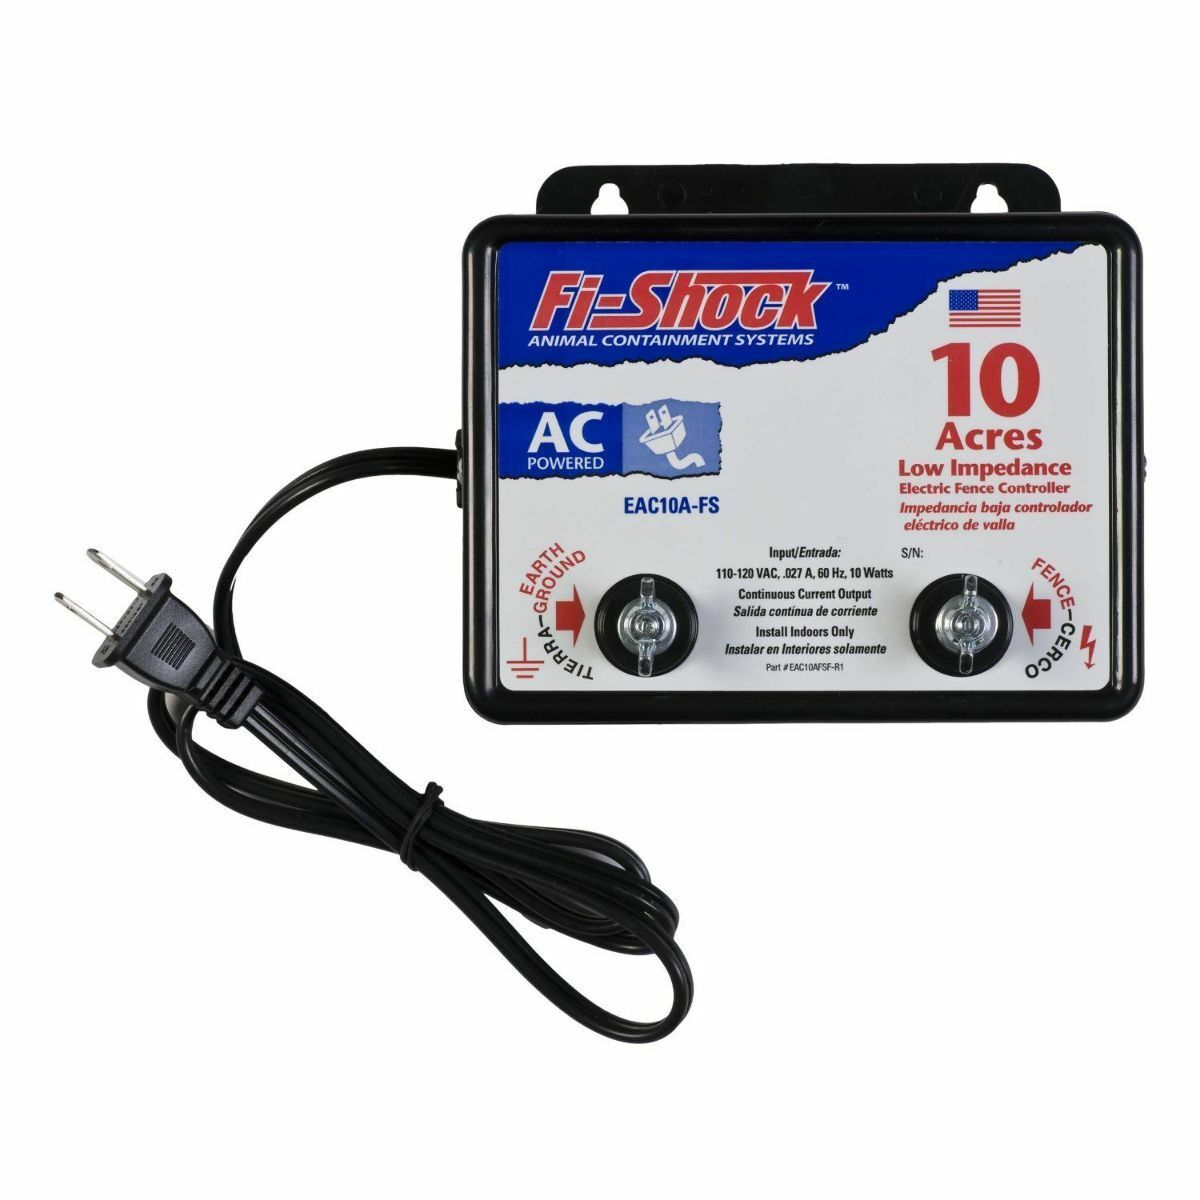 Electric fence charger high power pigs cattle horses deer 10 acre picture 1 of 1 sciox Choice Image